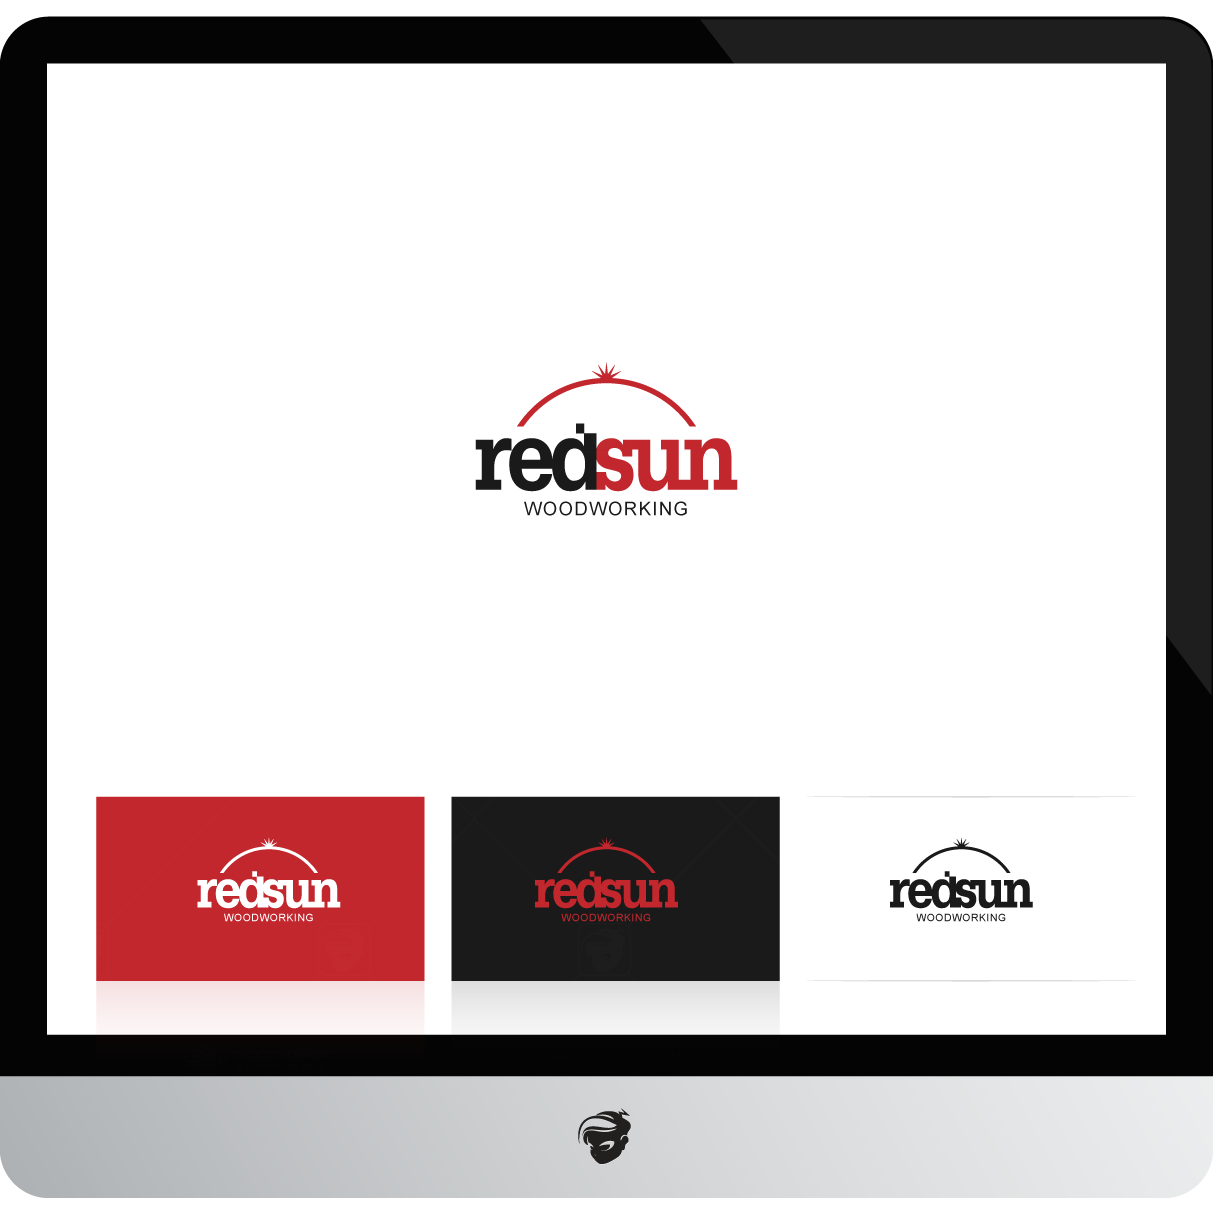 Logo Design by zesthar - Entry No. 152 in the Logo Design Contest Red Sun Woodworking Logo Design.